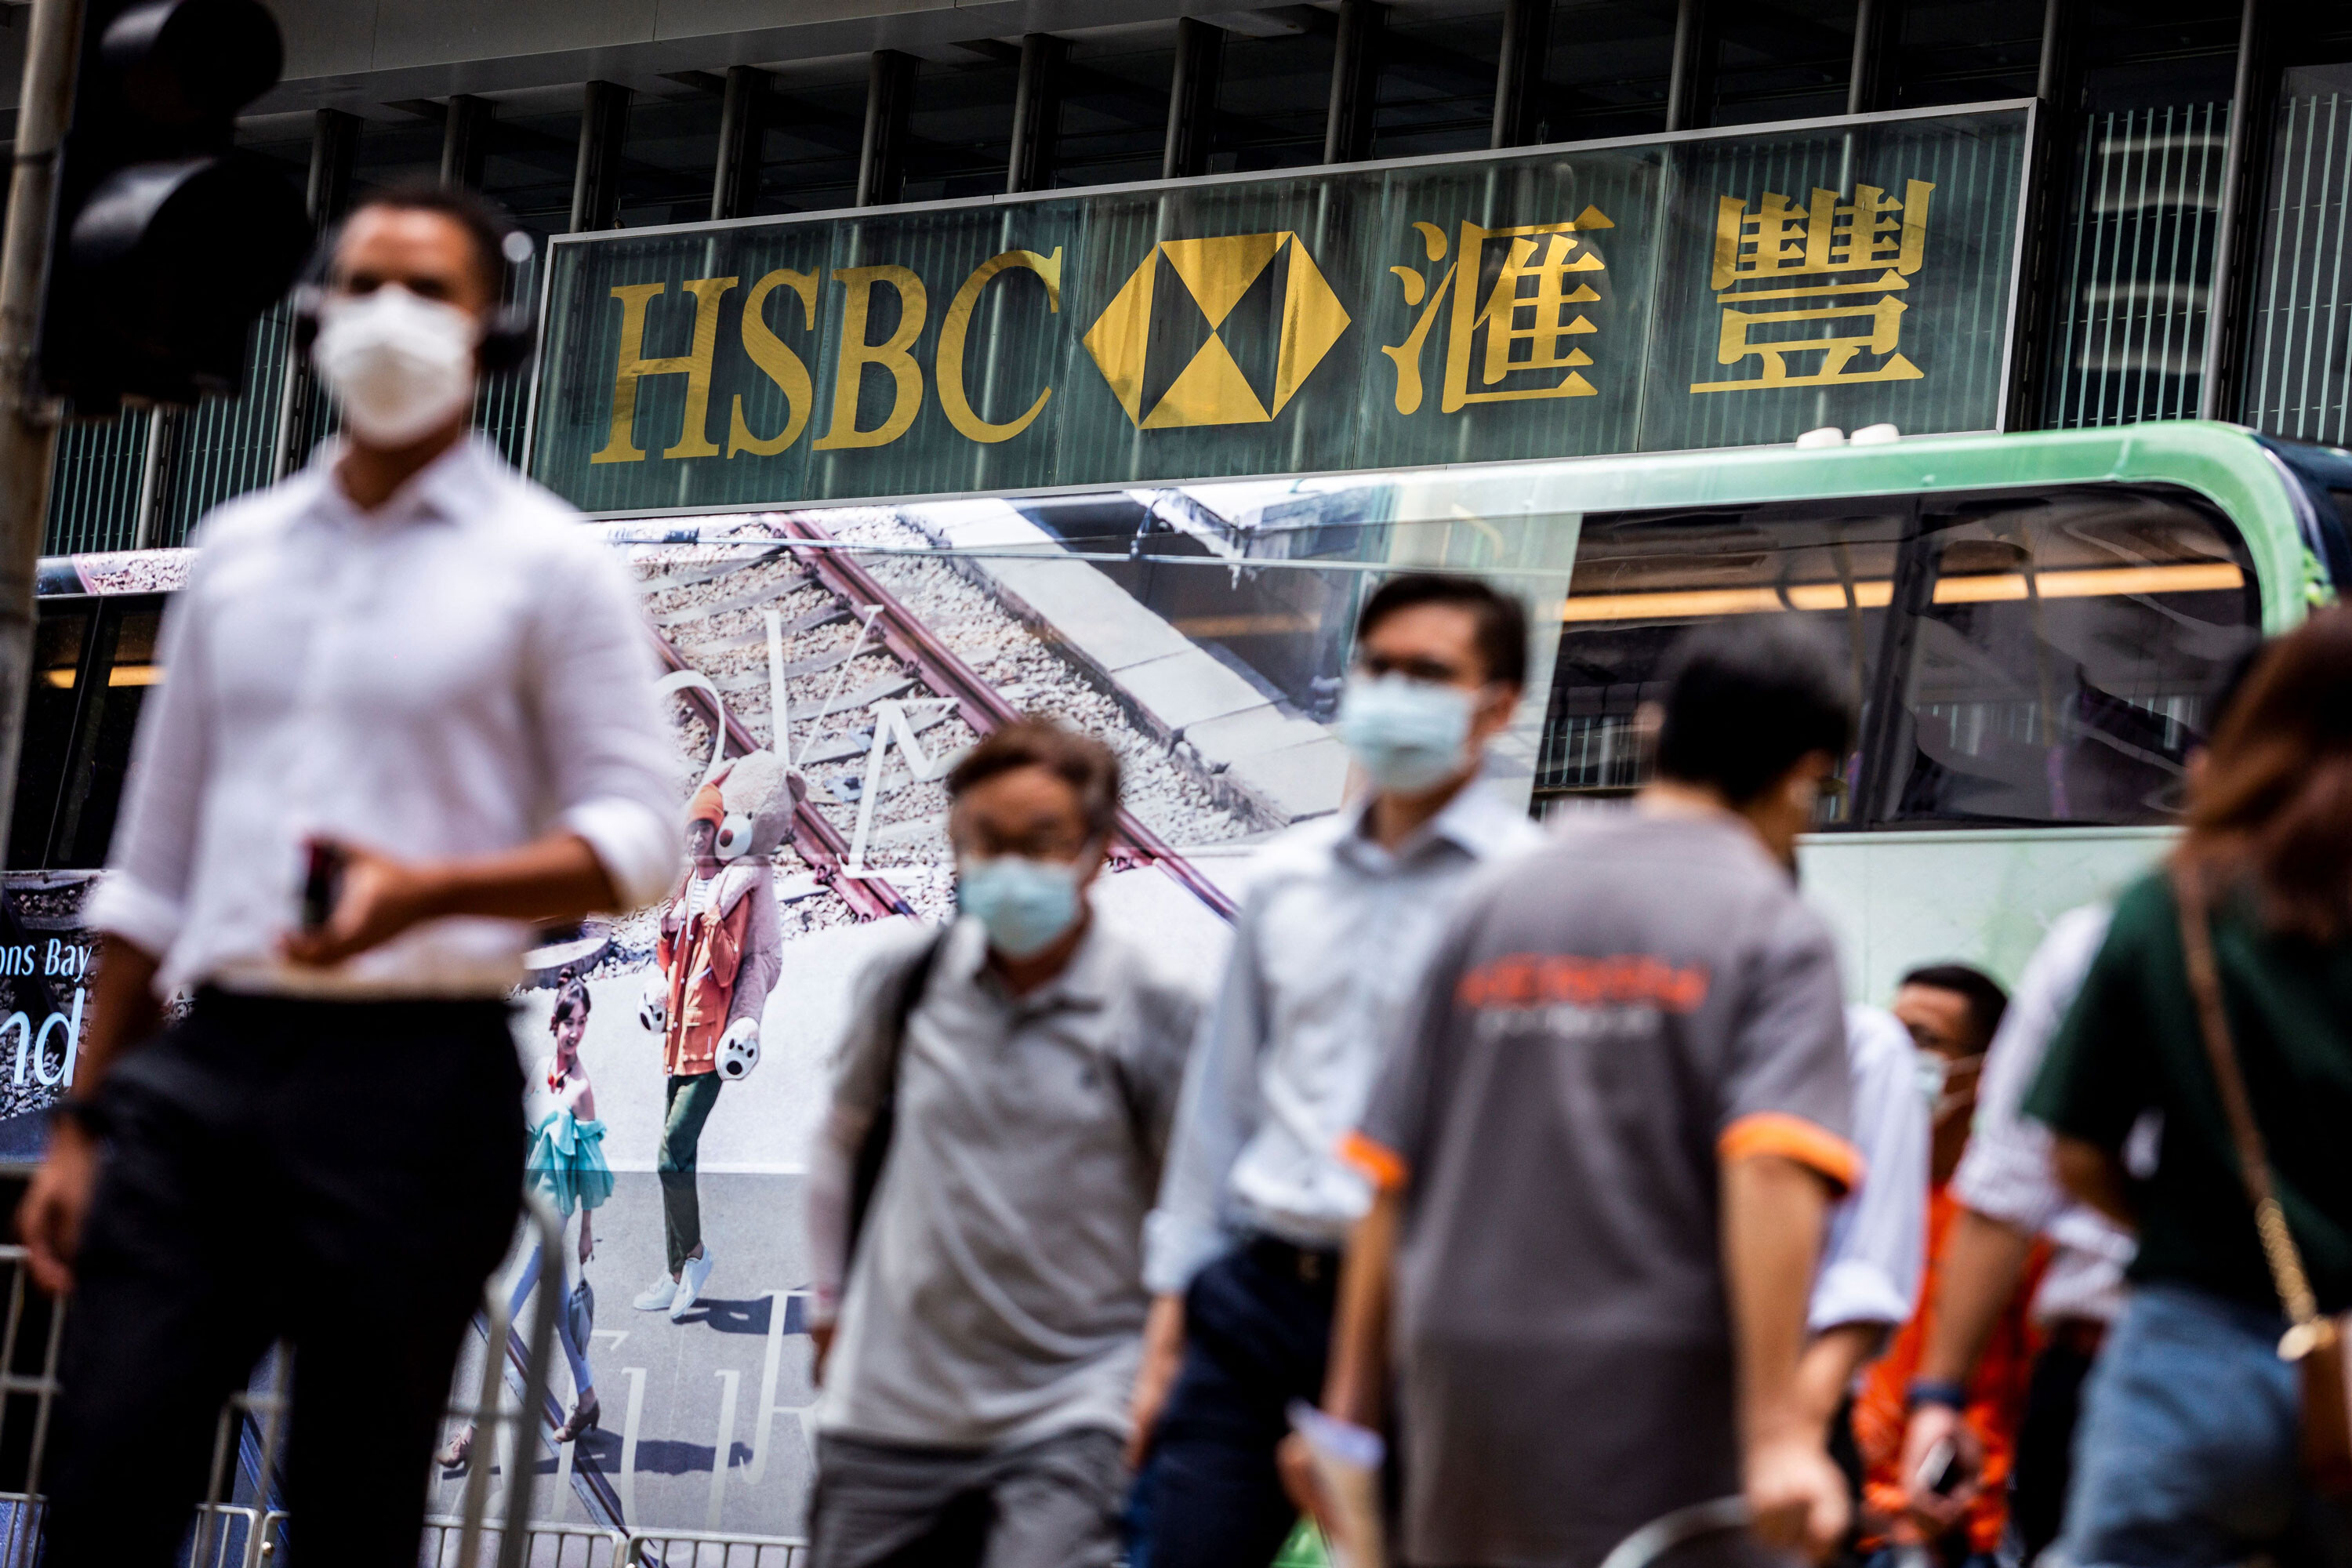 HSBC brings back dividend as profit more than doubles to $10.8 billion